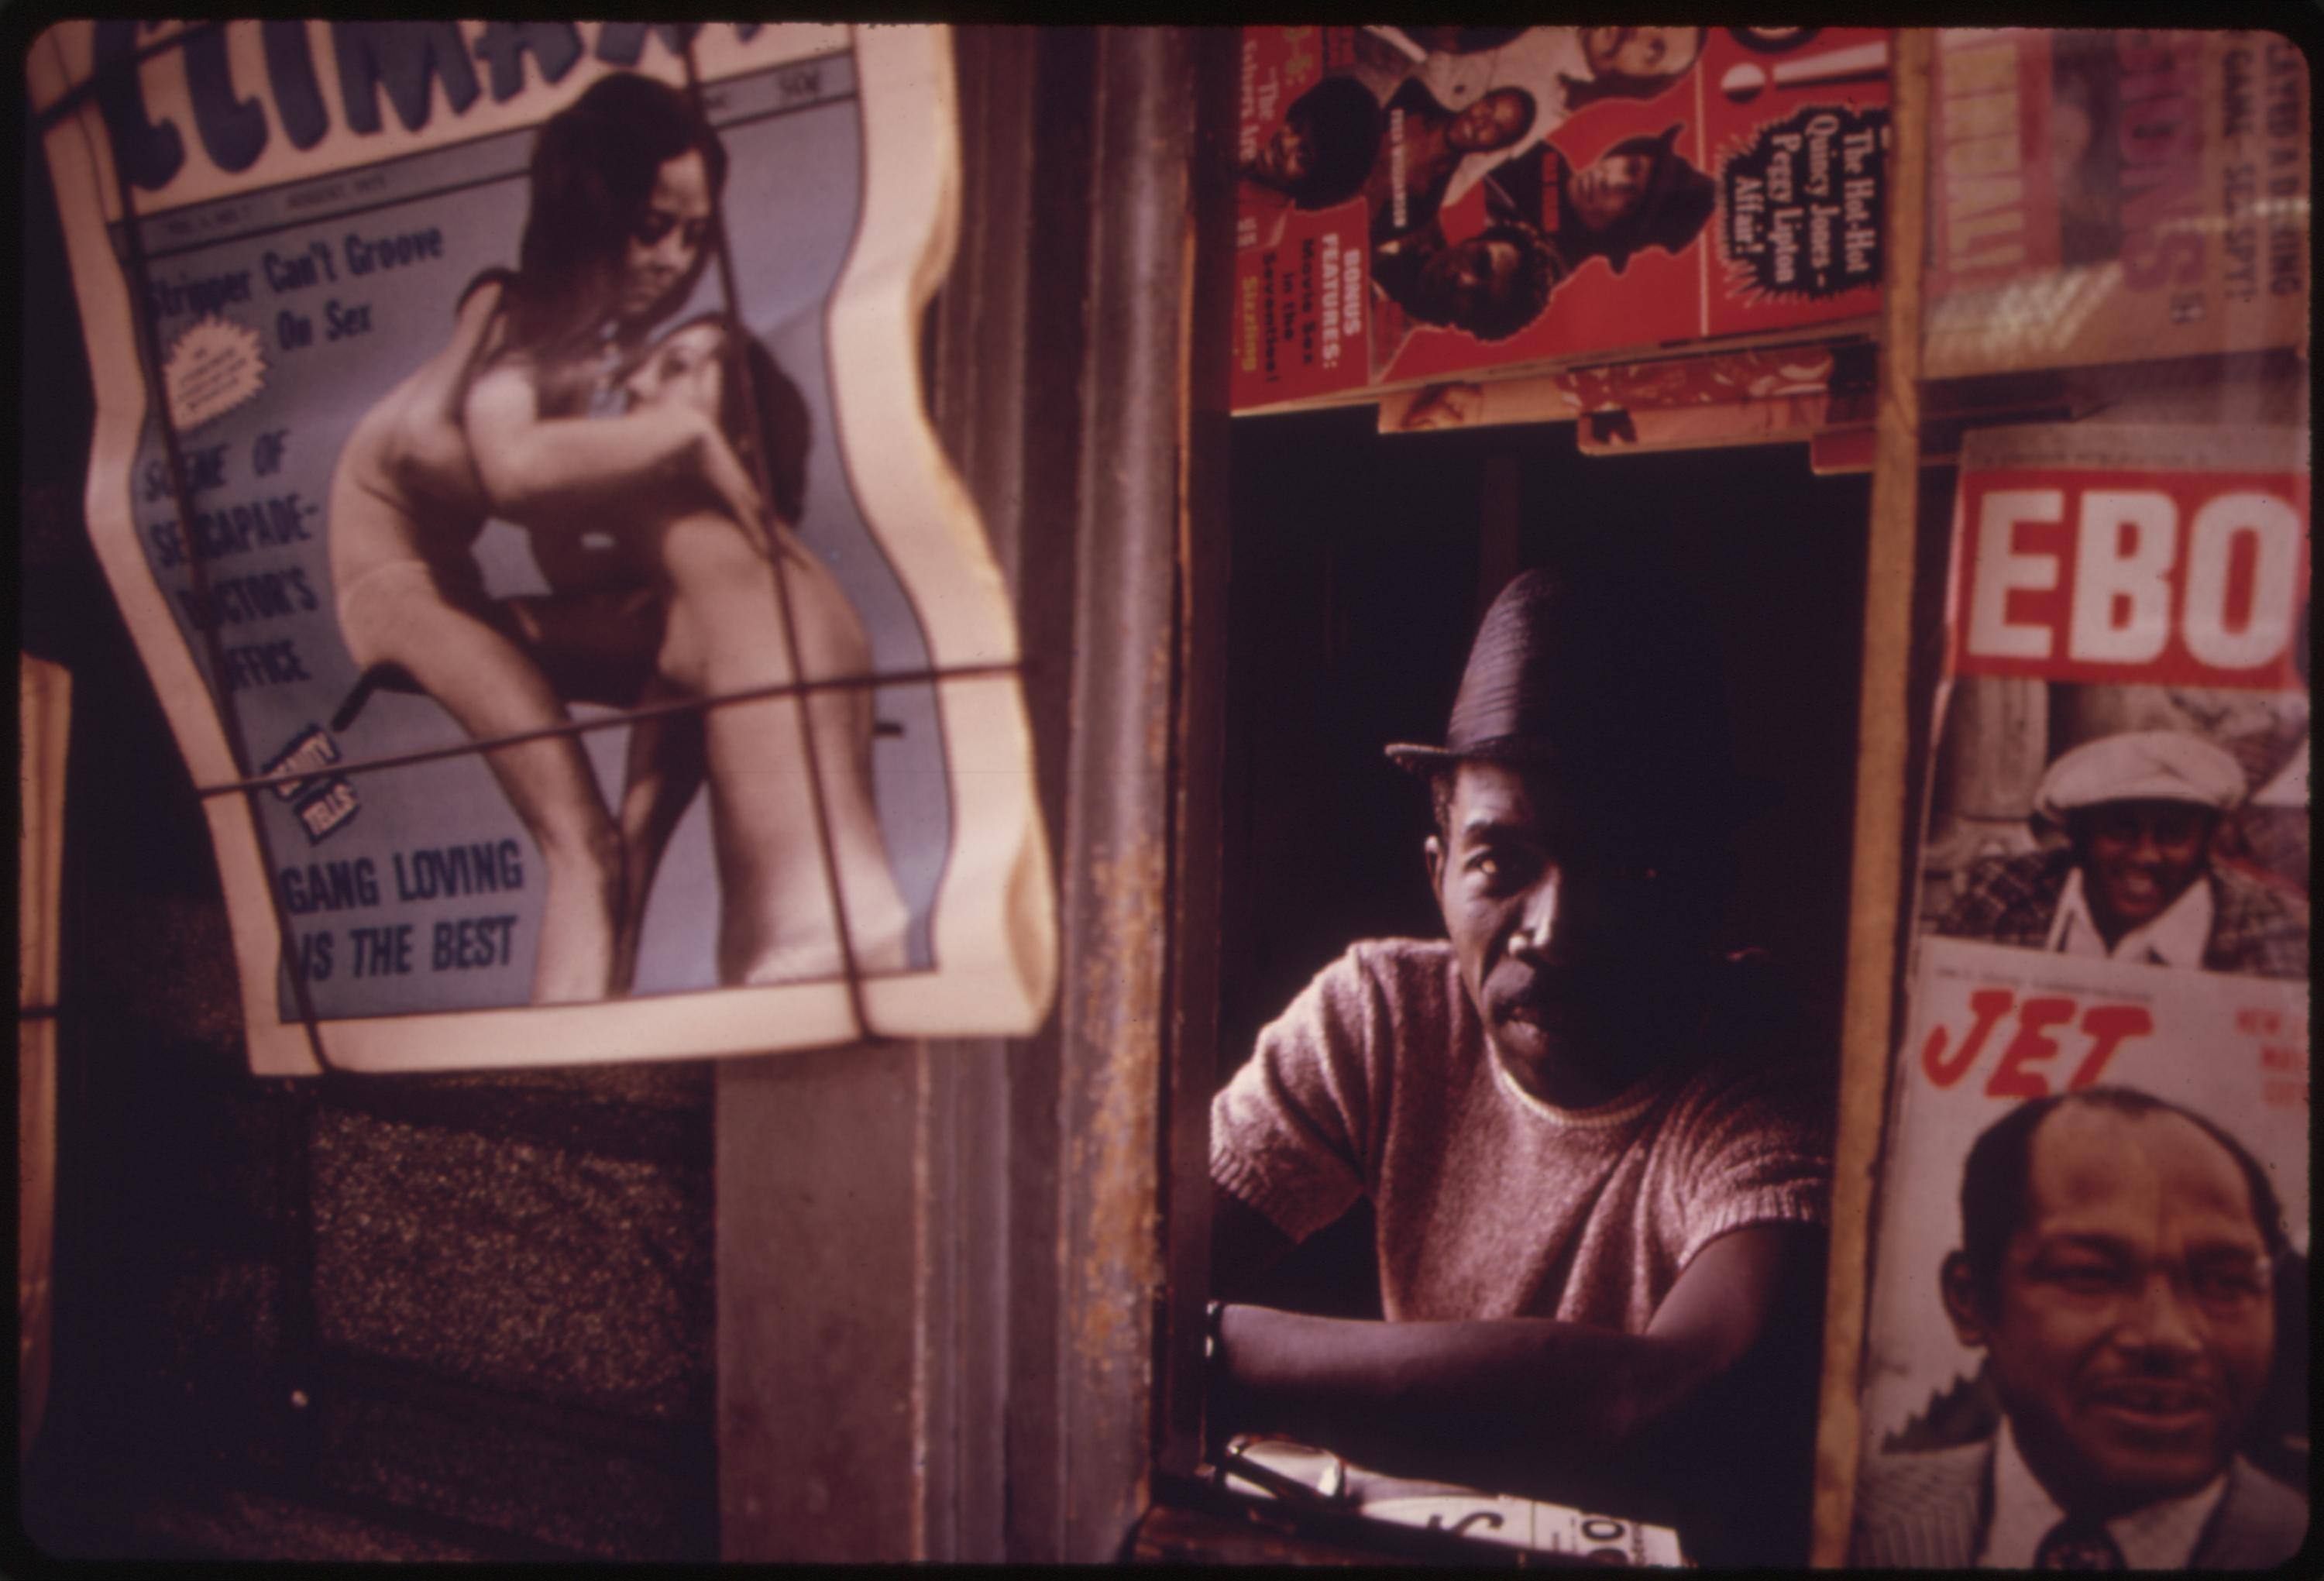 Black Man Operating A Newsstand In Chicago On The West Side The City Is Believed To Be The Black Business Capital Of The United States, 06:1973 John H. White